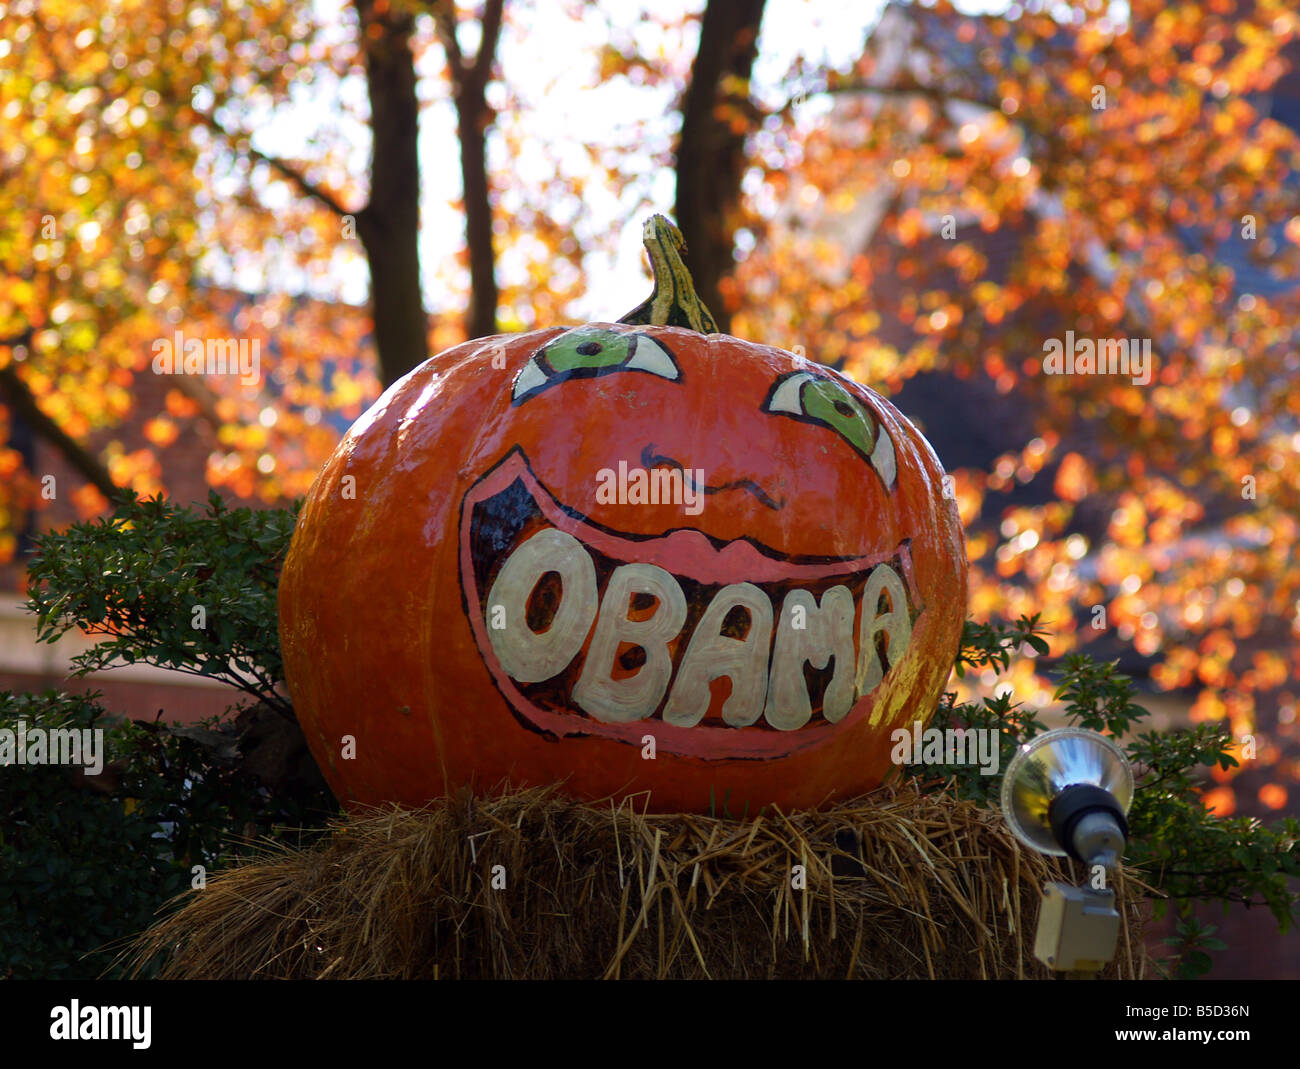 Autumn decorations incorporate support for Barack Obama. - Stock Image